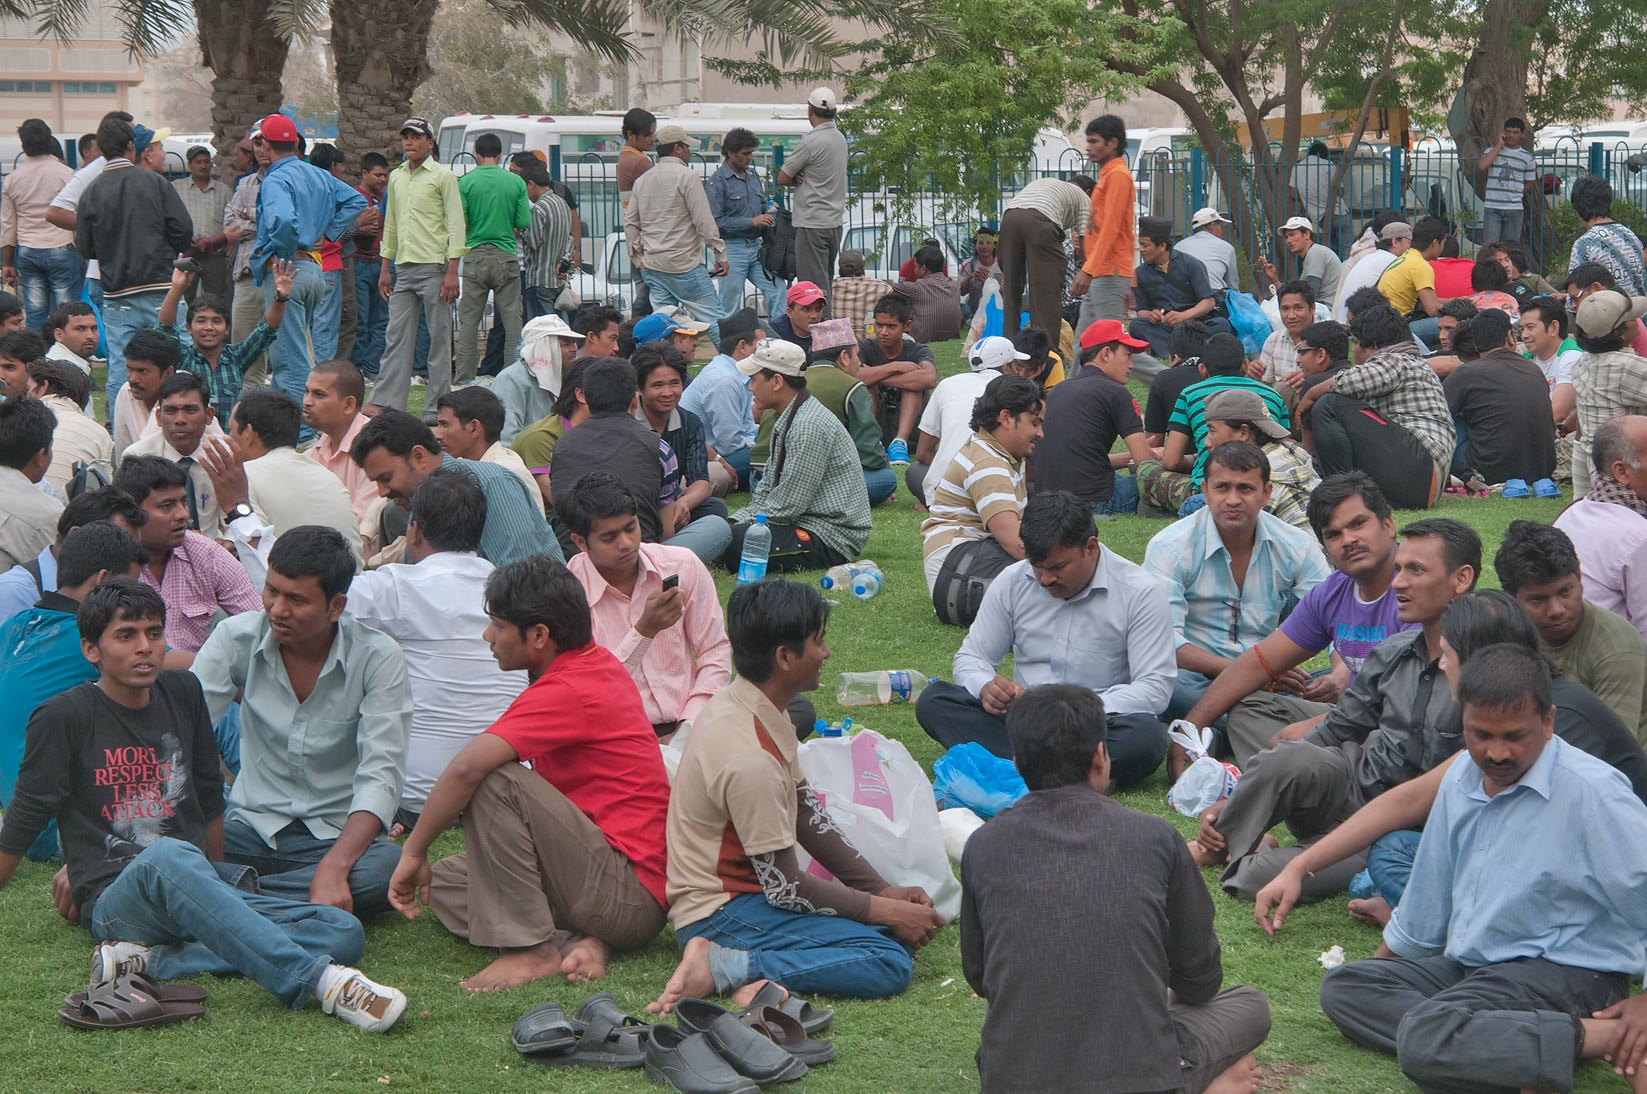 Migrant workers resting on a lawn on Friday...Bus Station Al Ghanim. Doha, Qatar